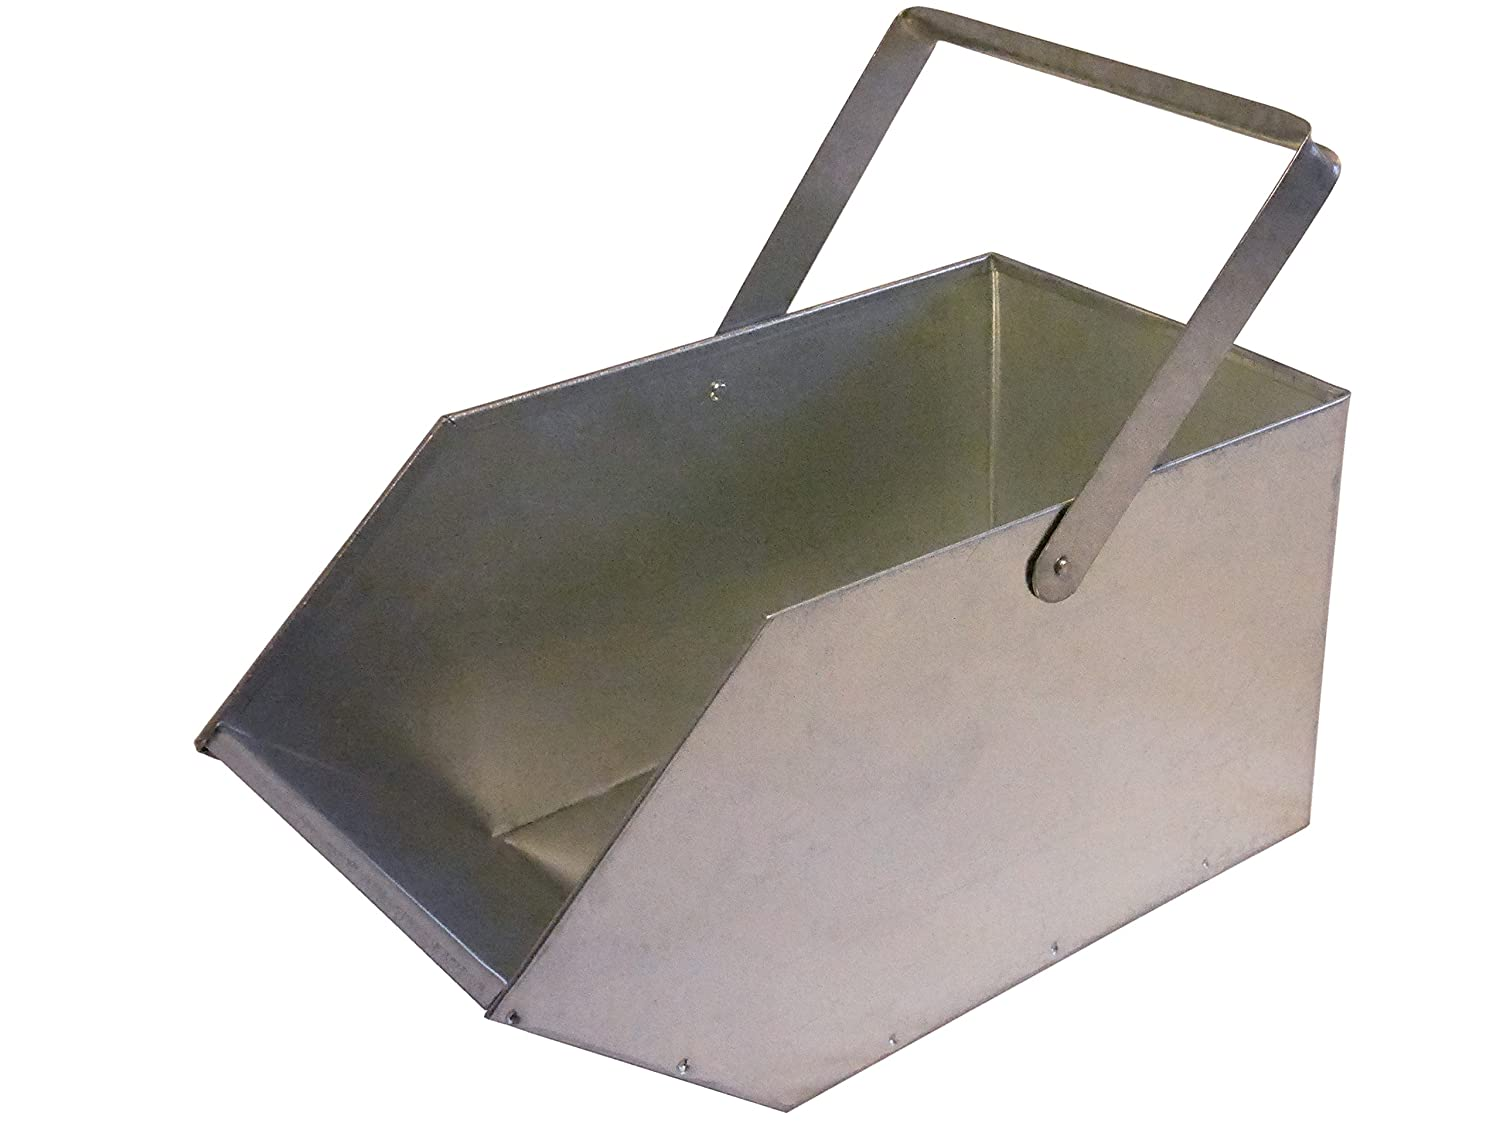 "Coal Scuttle/Wood Basket/Pellet Basket ""Bergwerk"" made from Galvanised Sheet Metal, Can Also Be Used as a Kindling Wood Storage Basket or as an Ash Bin kaufMAX"